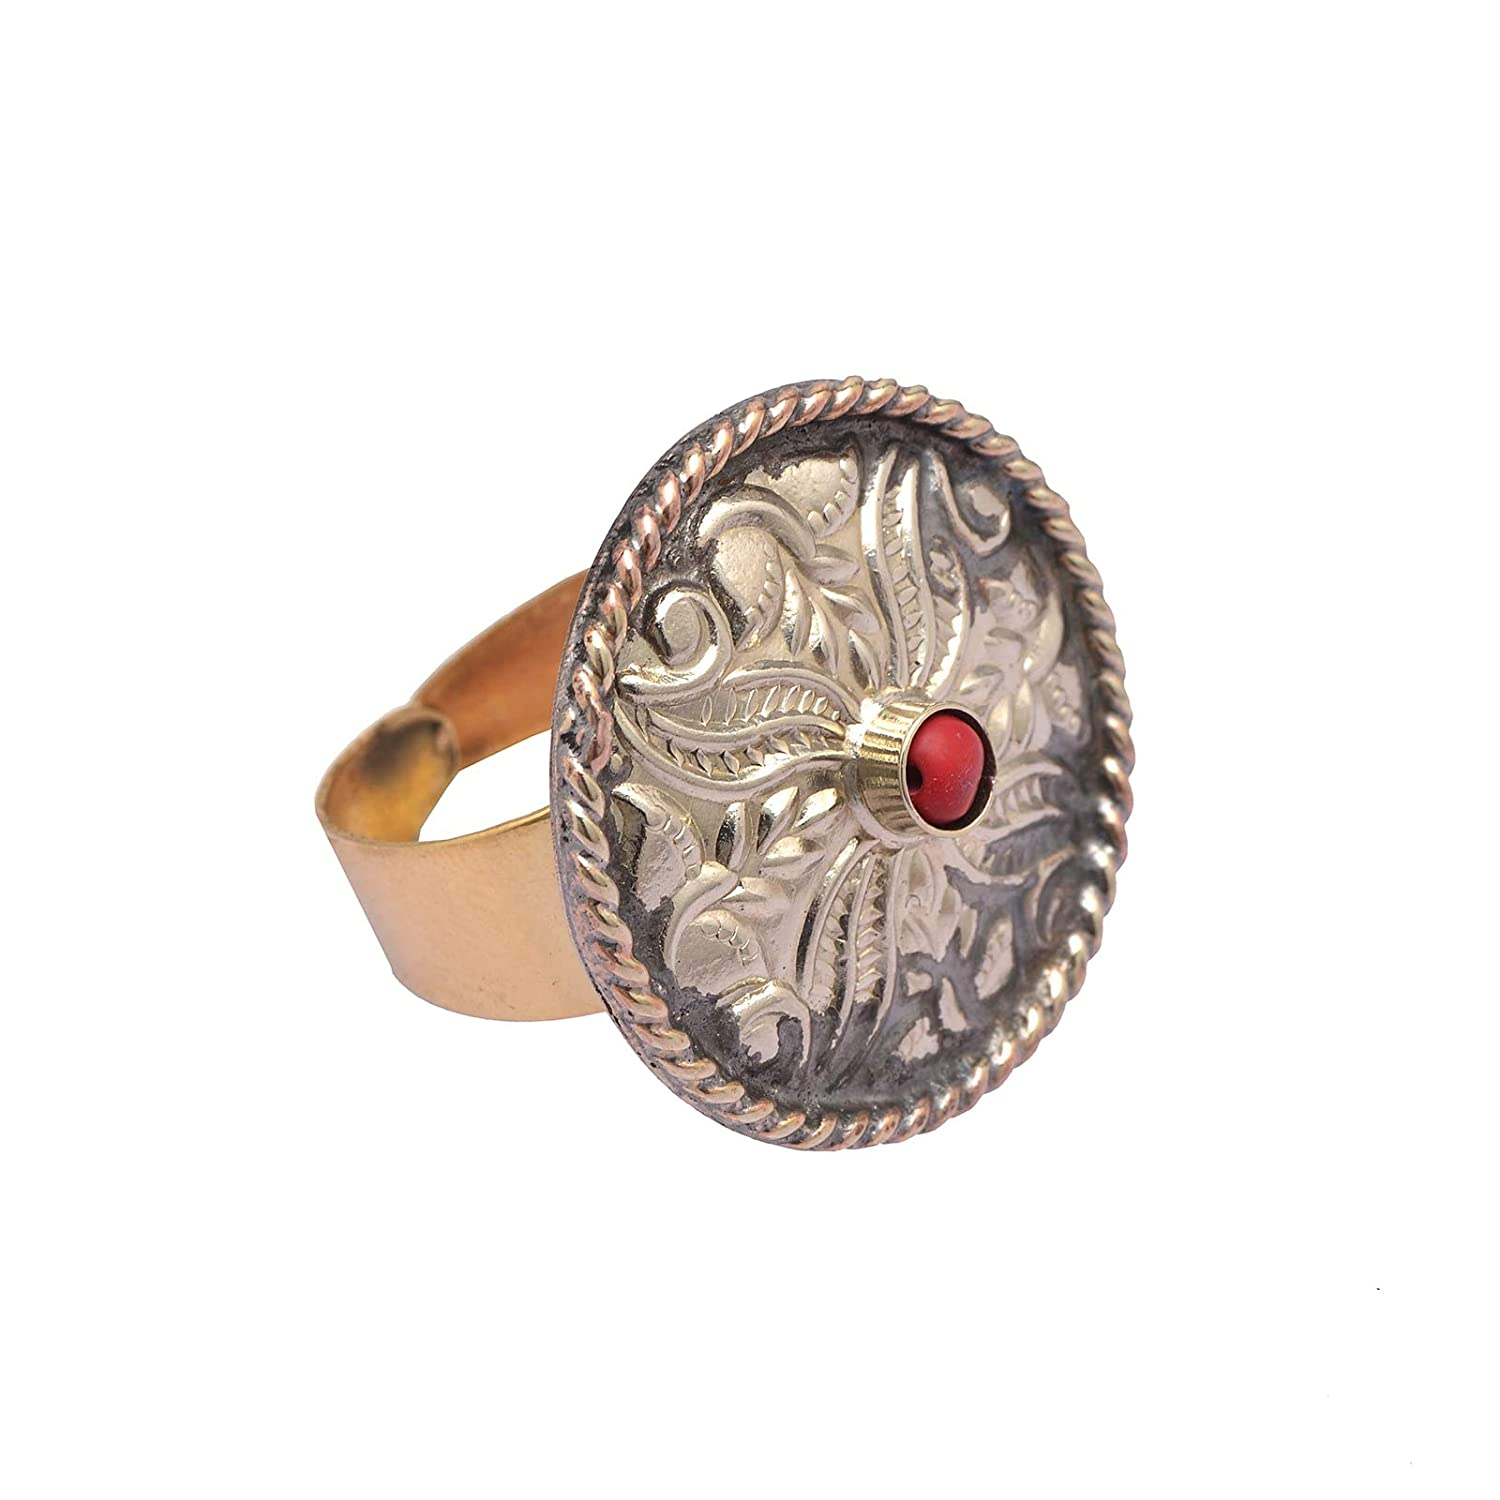 Zephyrr Ring Carved Oxidized Finish Silver Metal Red Stone Beaded Adjustable JR-82